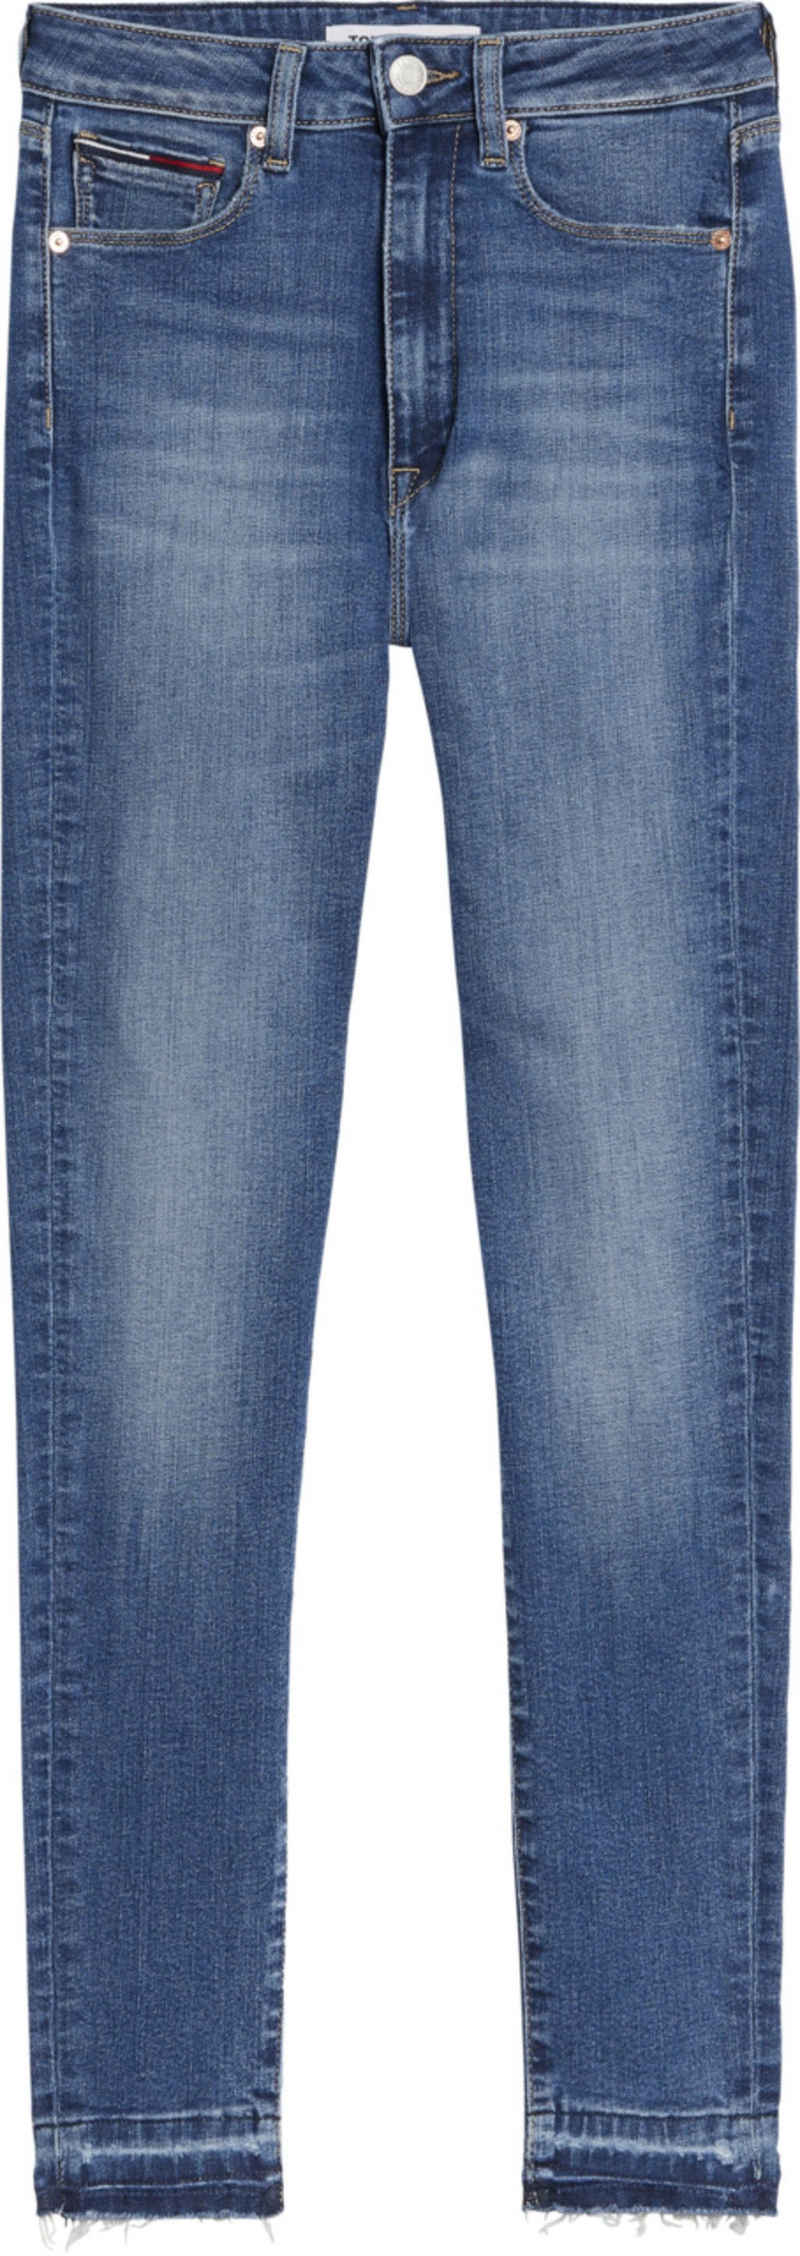 Tommy Jeans Skinny-fit-Jeans »SYLVIA HR S SKN ANKLE BE134 MBST« mit leicht ausgefranstem Saum